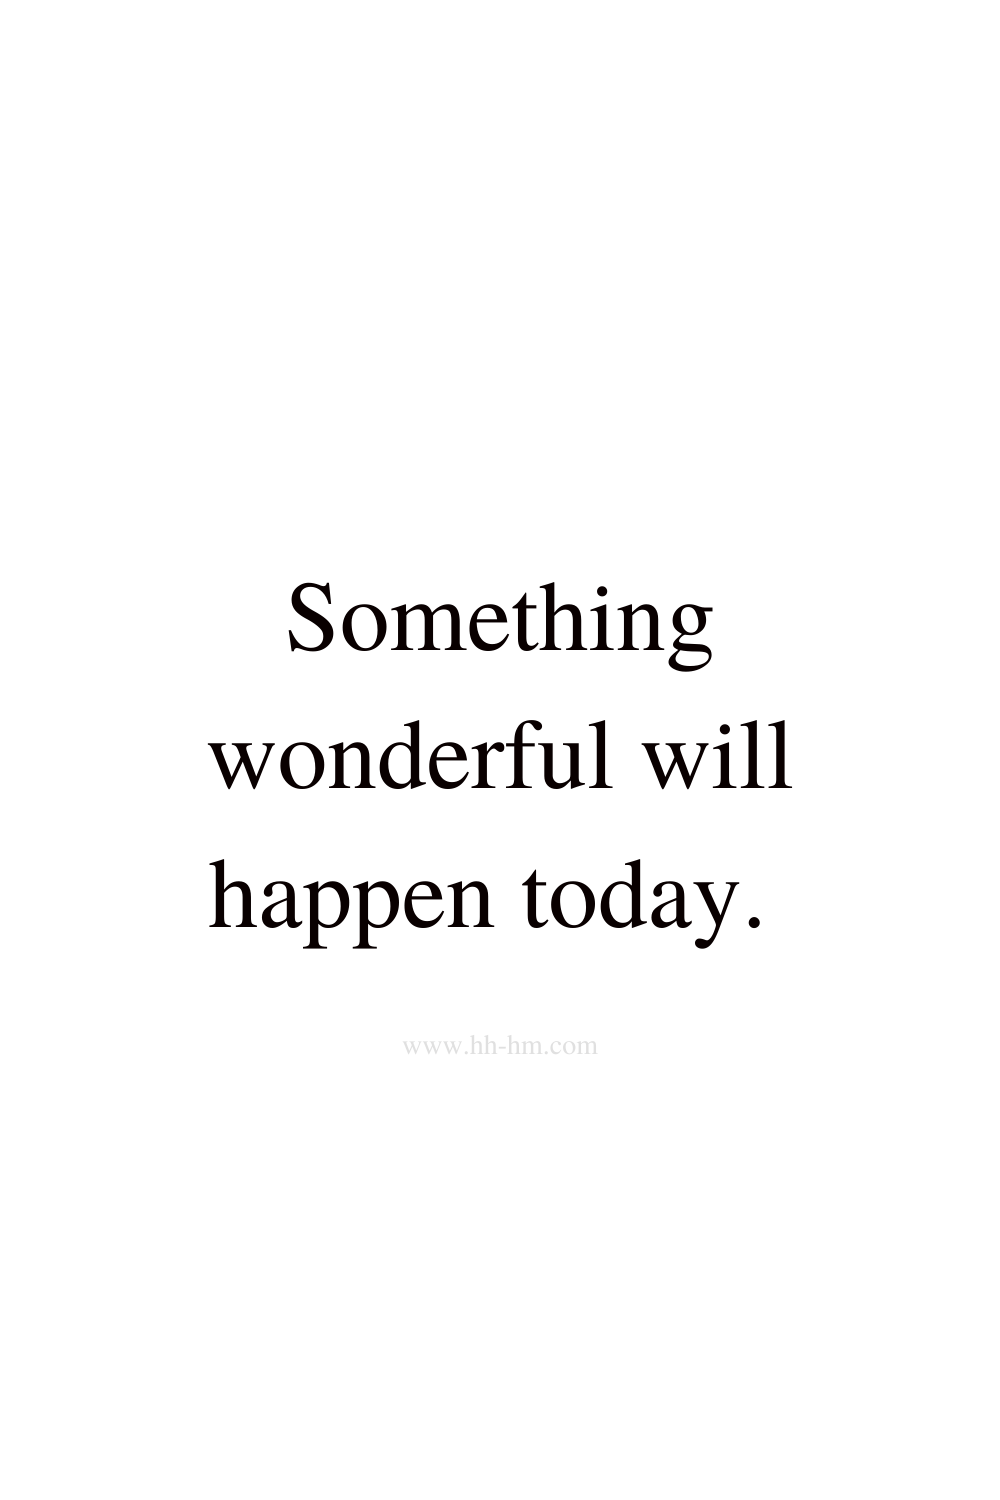 something wonderful will happen today - I am excited about today - short positive affirmations for happiness